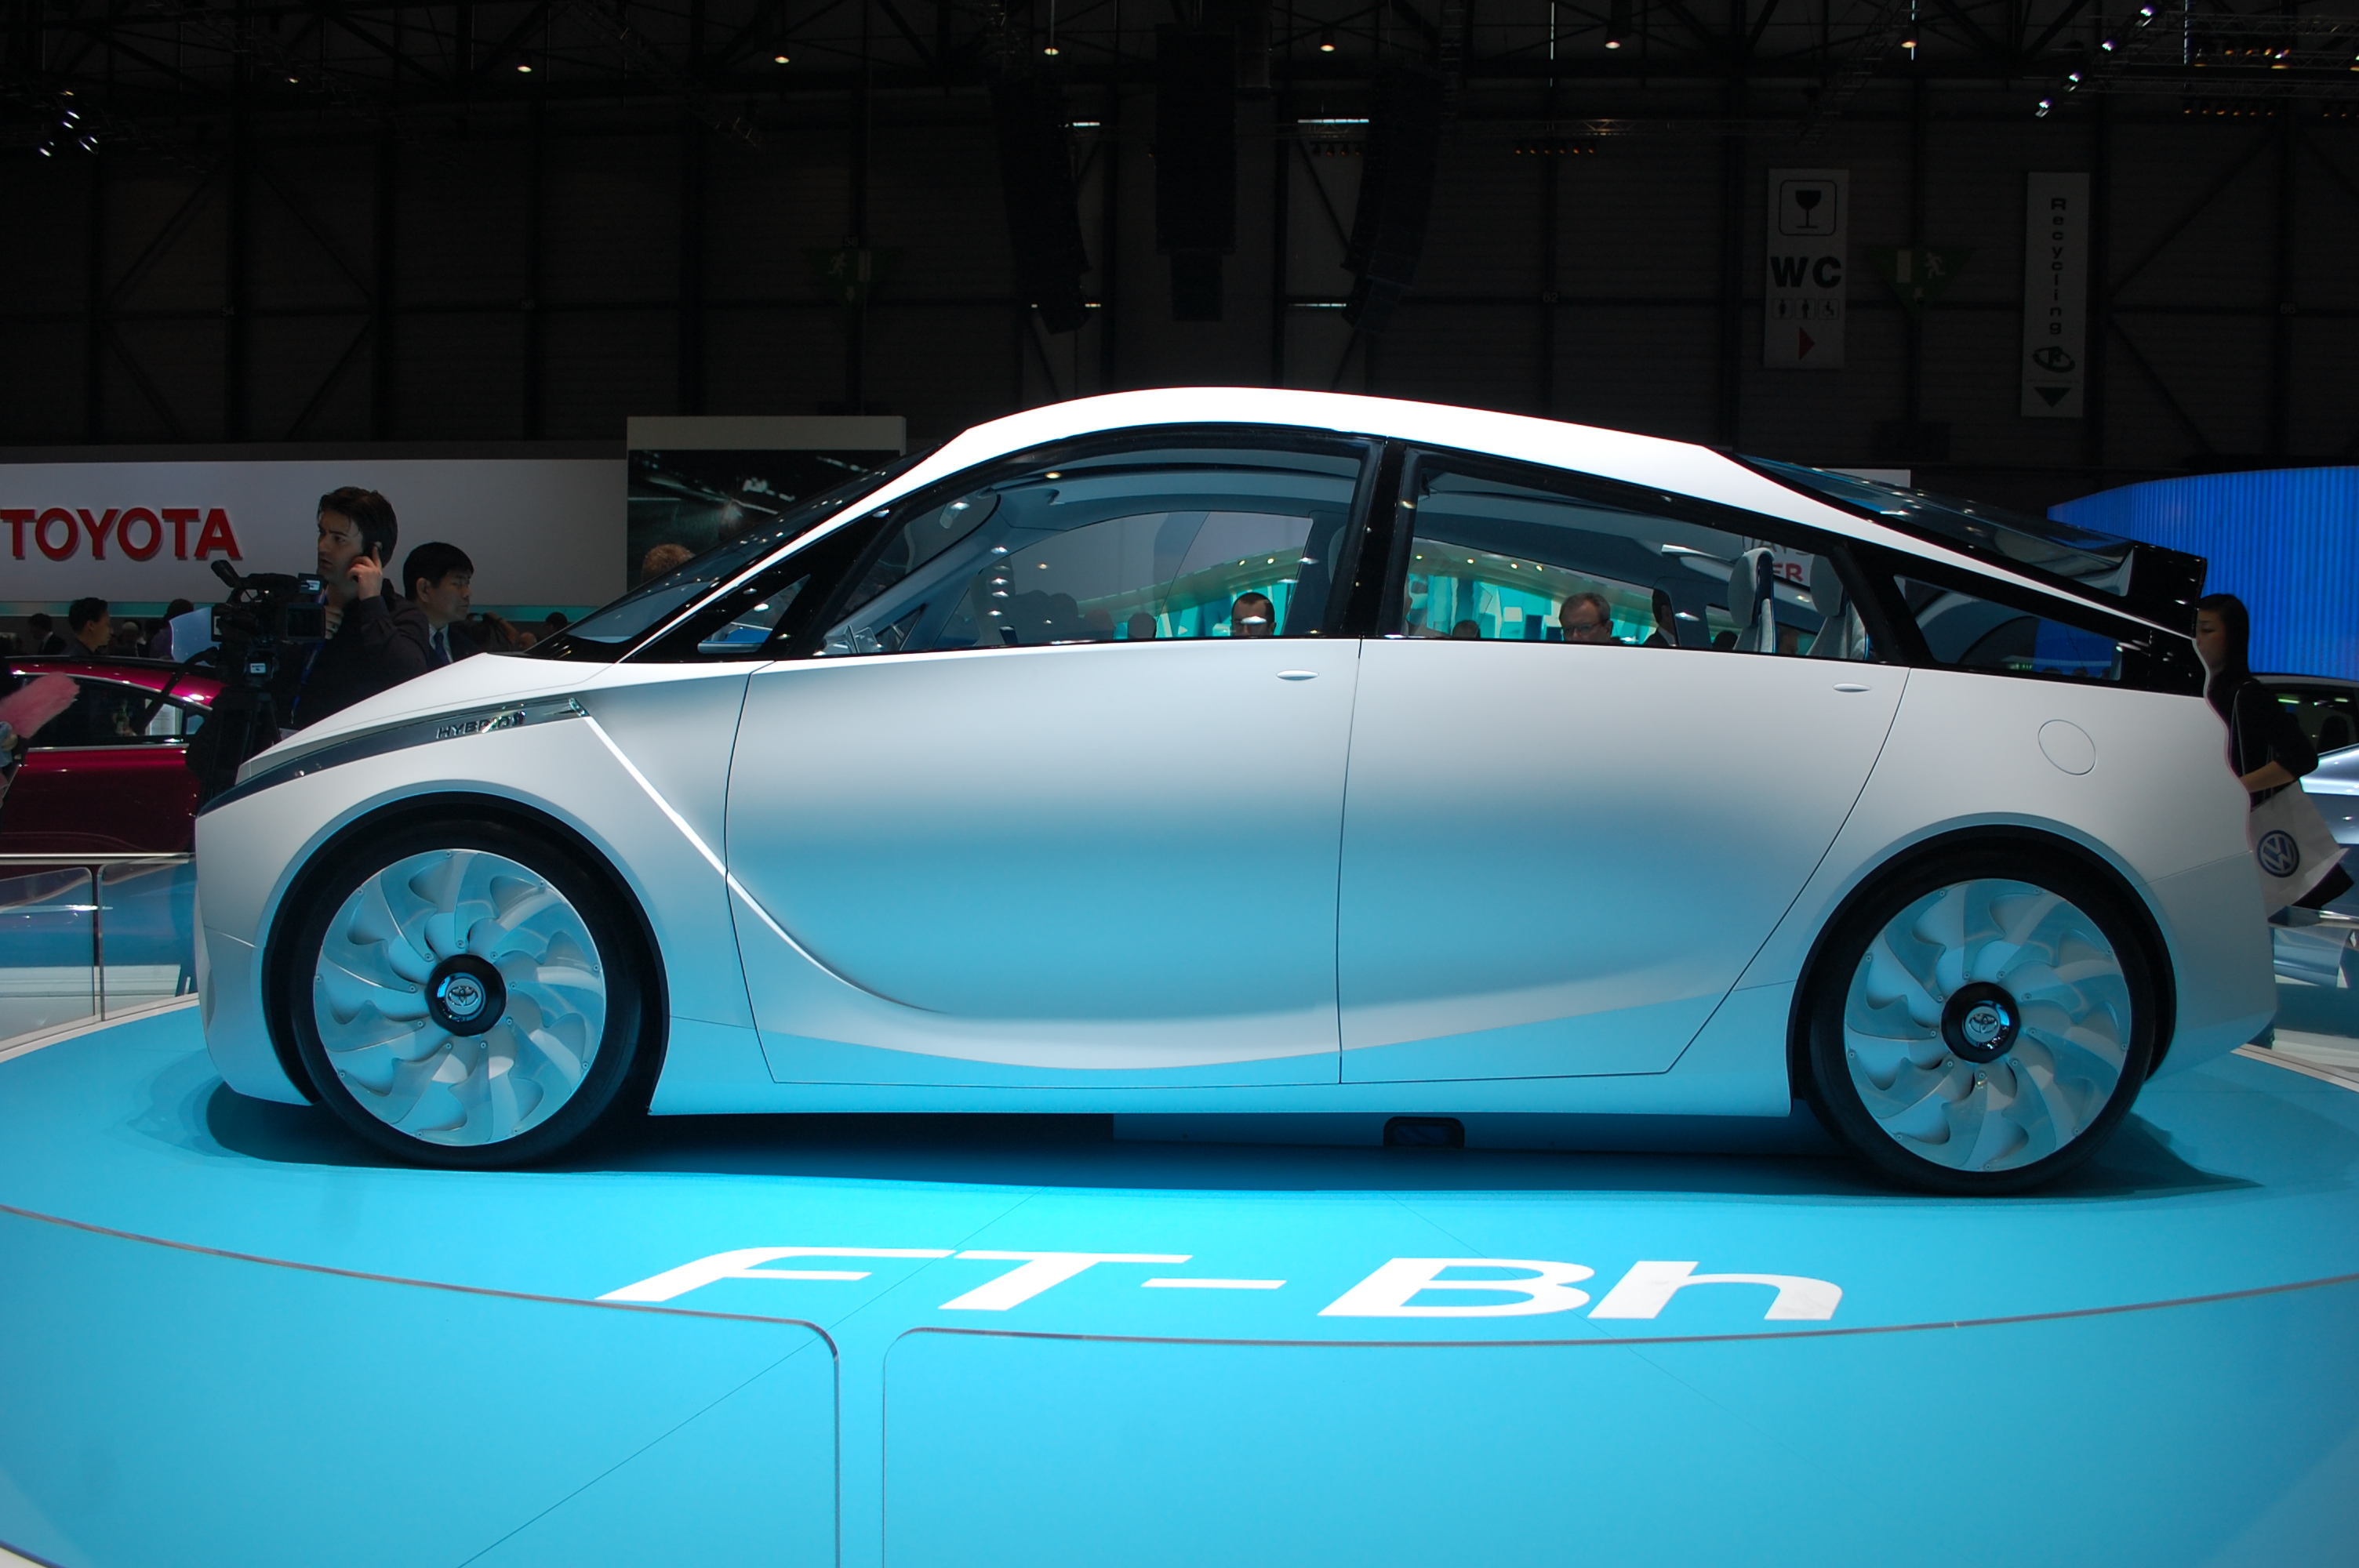 Toyota To Sell FT-Bh Hybrid Subcompact, At 60 MPG-Plus, After 2015